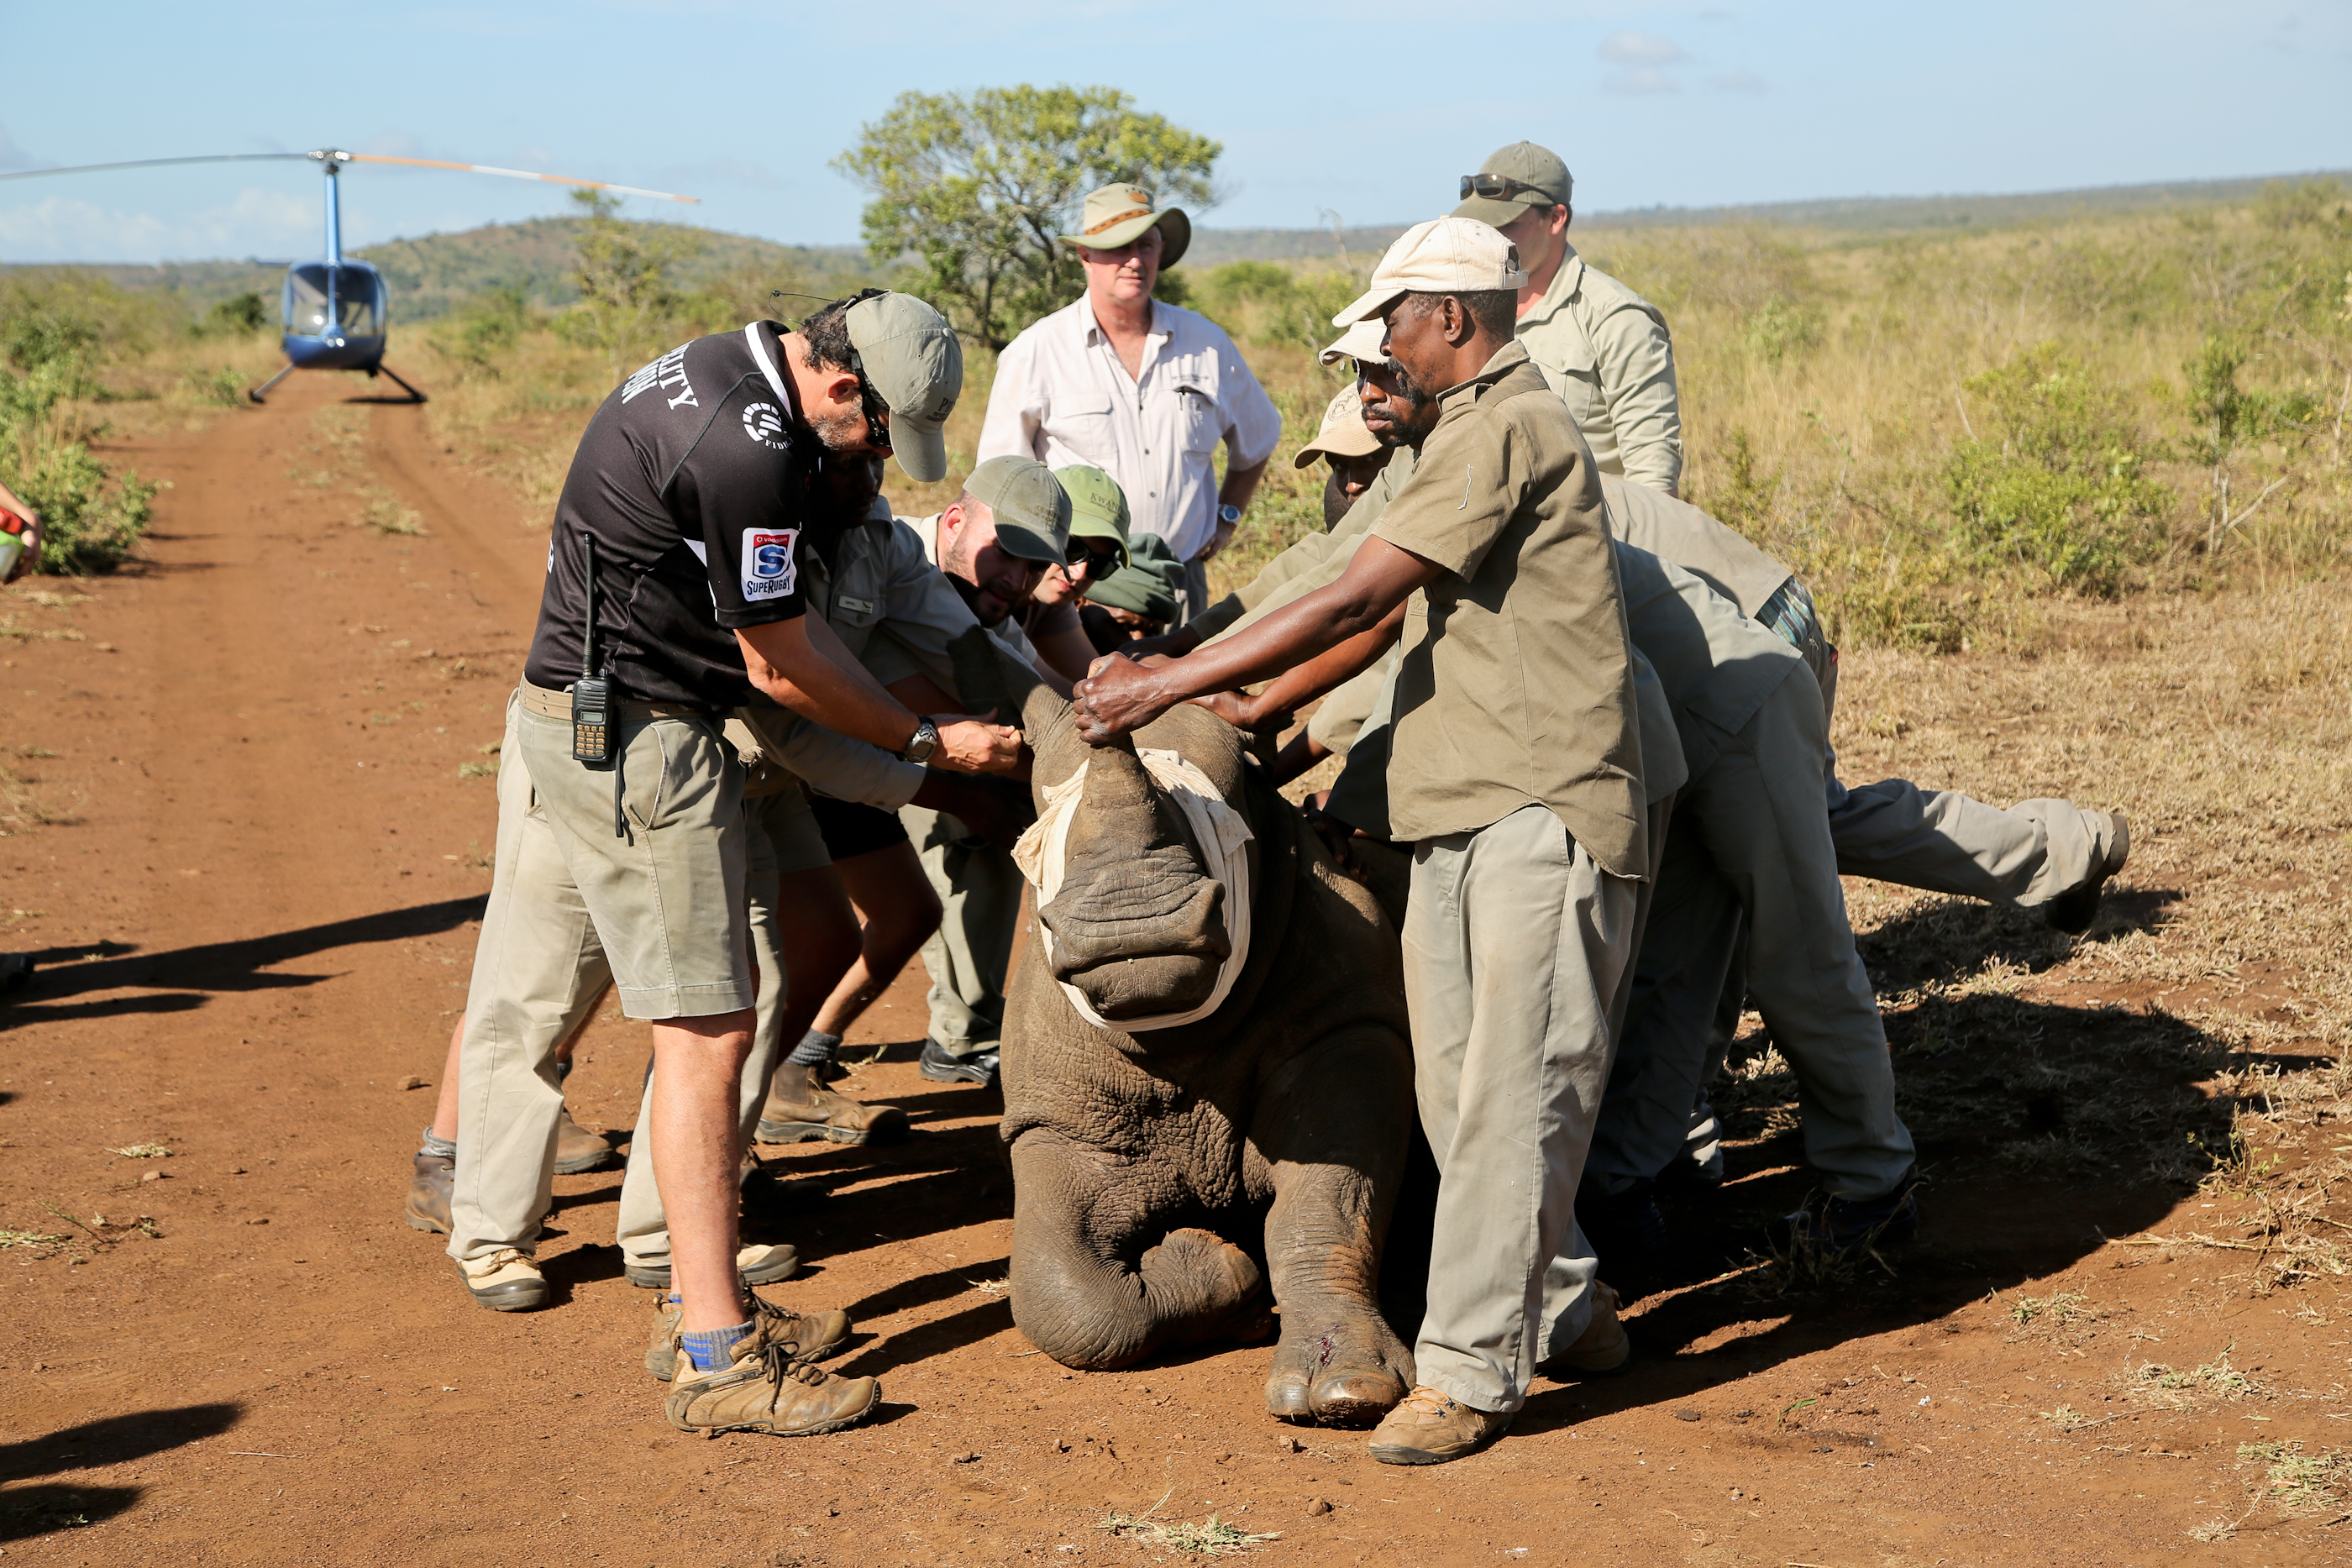 Rhino-dehorning-and-conservation-at-andBeyond-Phinda-Private-Game-Reserve-(1).jpg